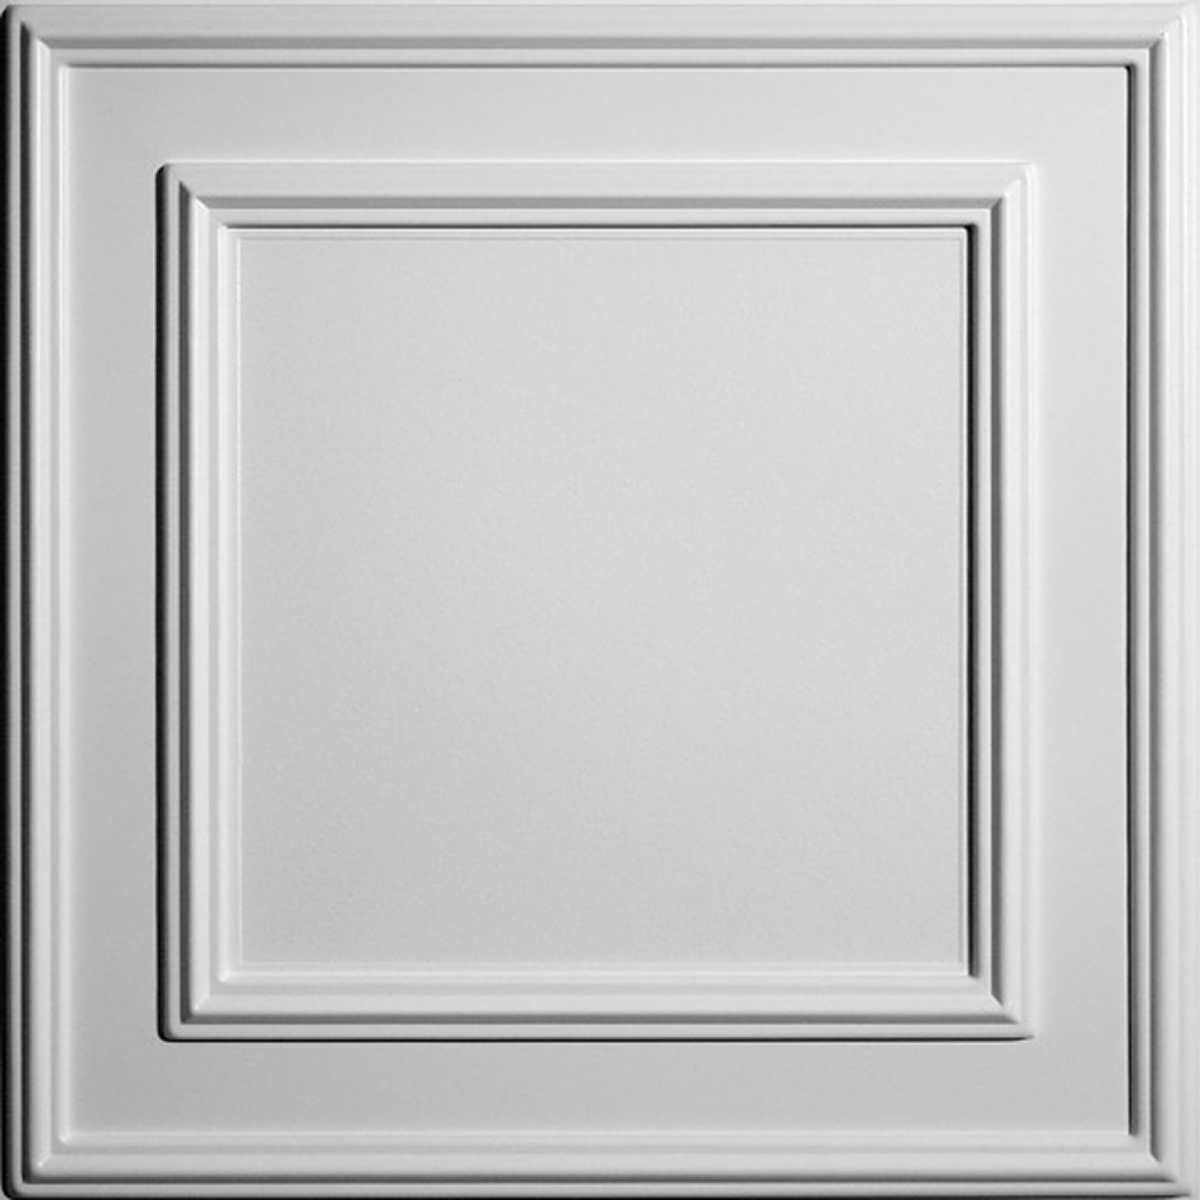 Ceilume stratford lay in ceiling panel kit 24 or 80 sq ft similar products dailygadgetfo Image collections